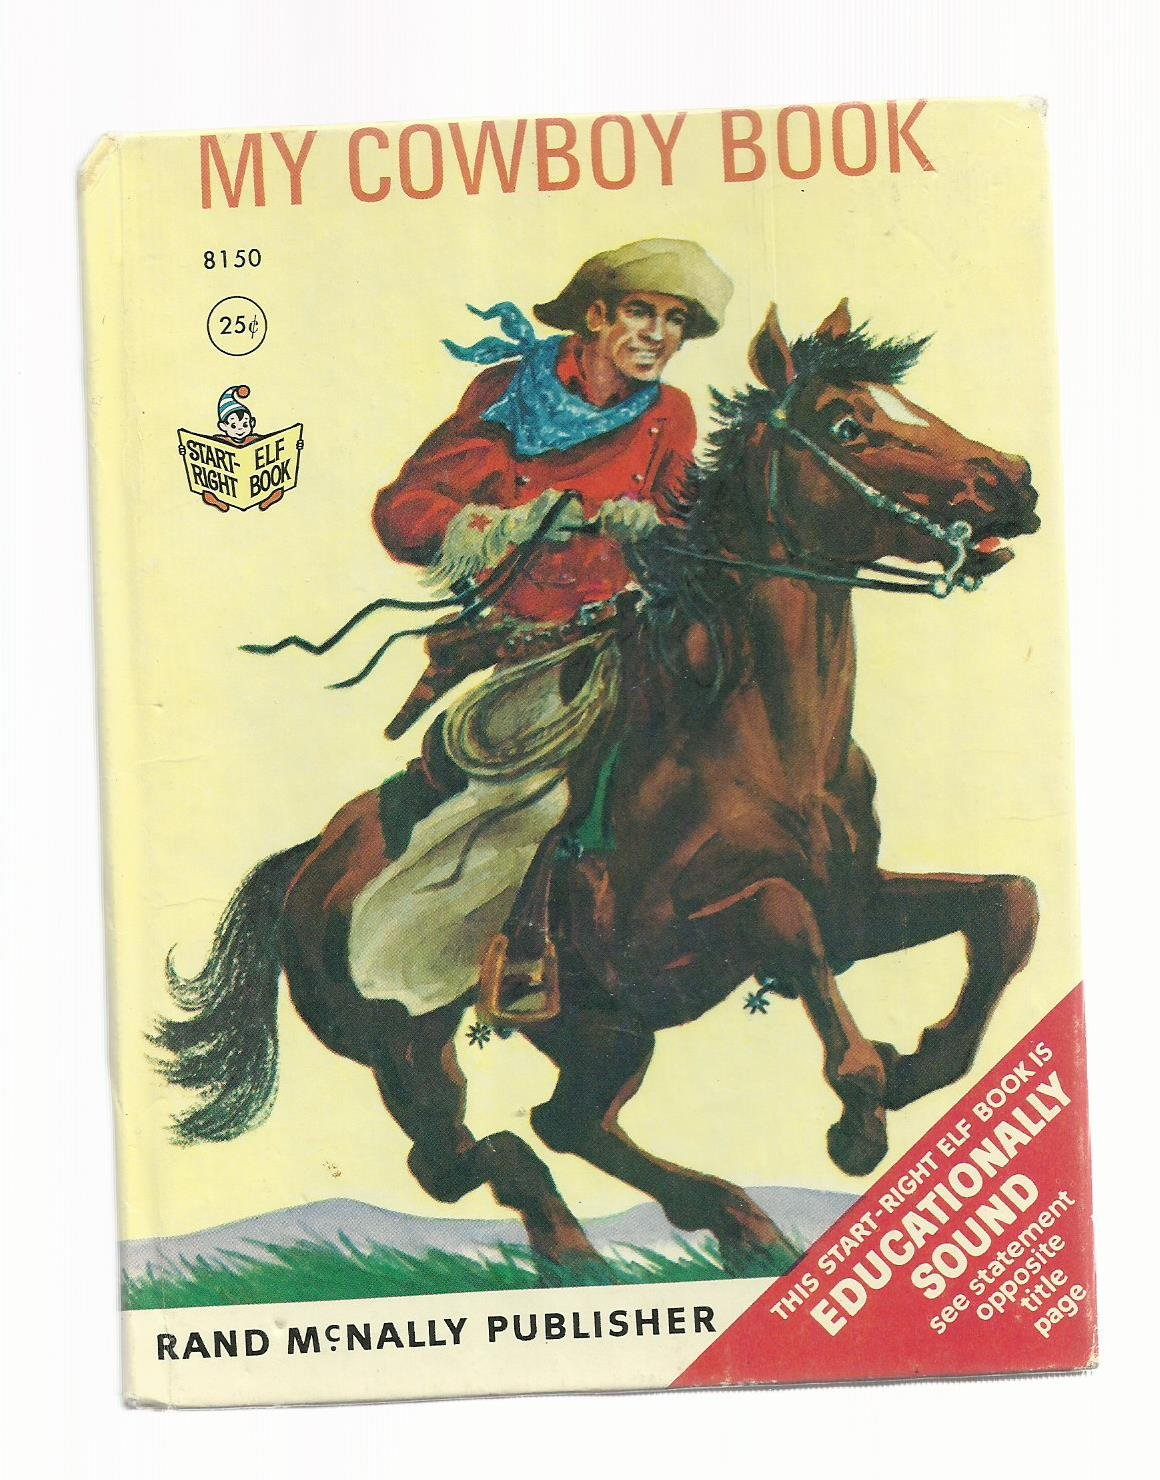 Vintage Children's Rand McNally Start Right Elf Book - MY COWBOY BOOK 1967 A